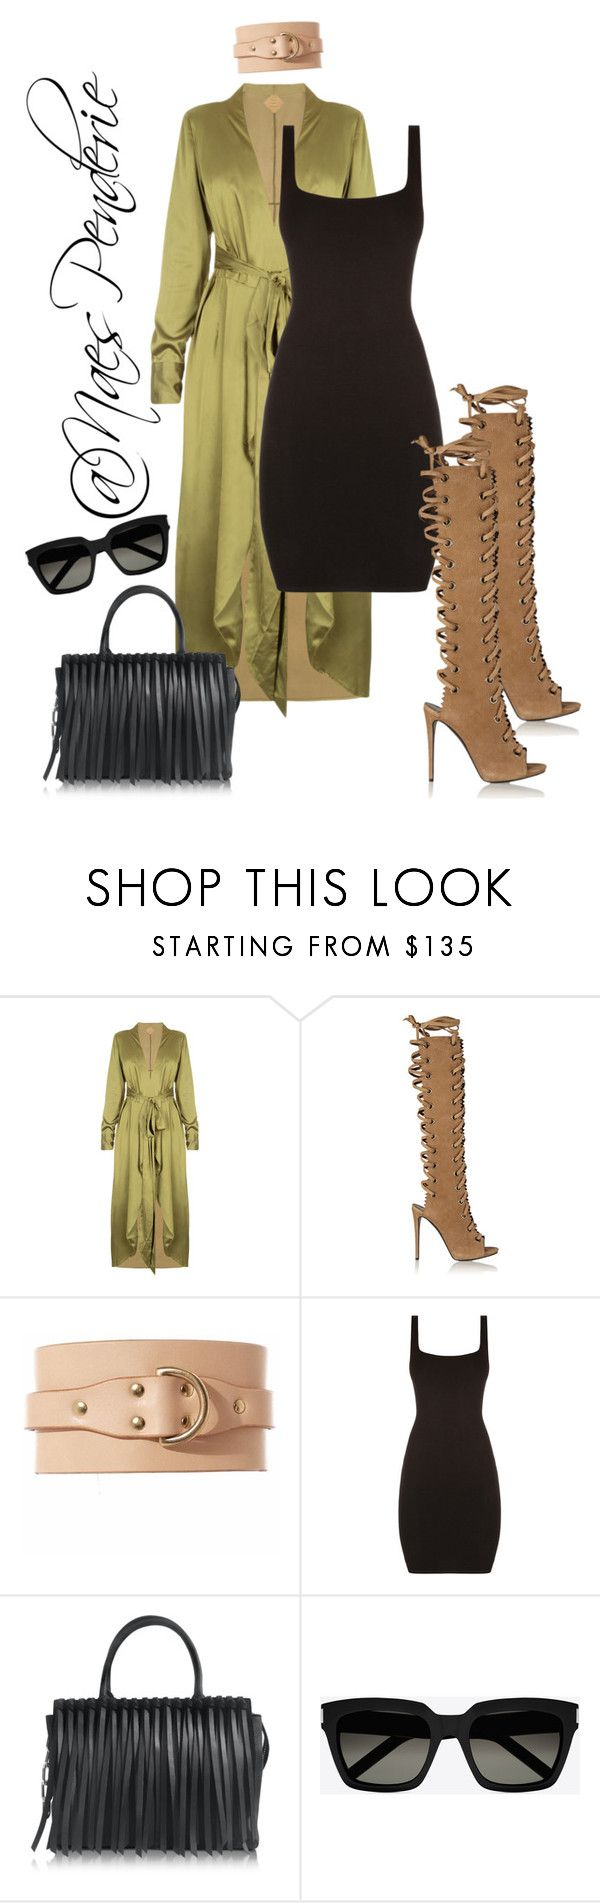 """""""Untitled #108"""" by naes-penderie on Polyvore featuring Giuseppe Zanotti, Fleet Ilya, Alexander Wang and Yves Saint Laurent"""